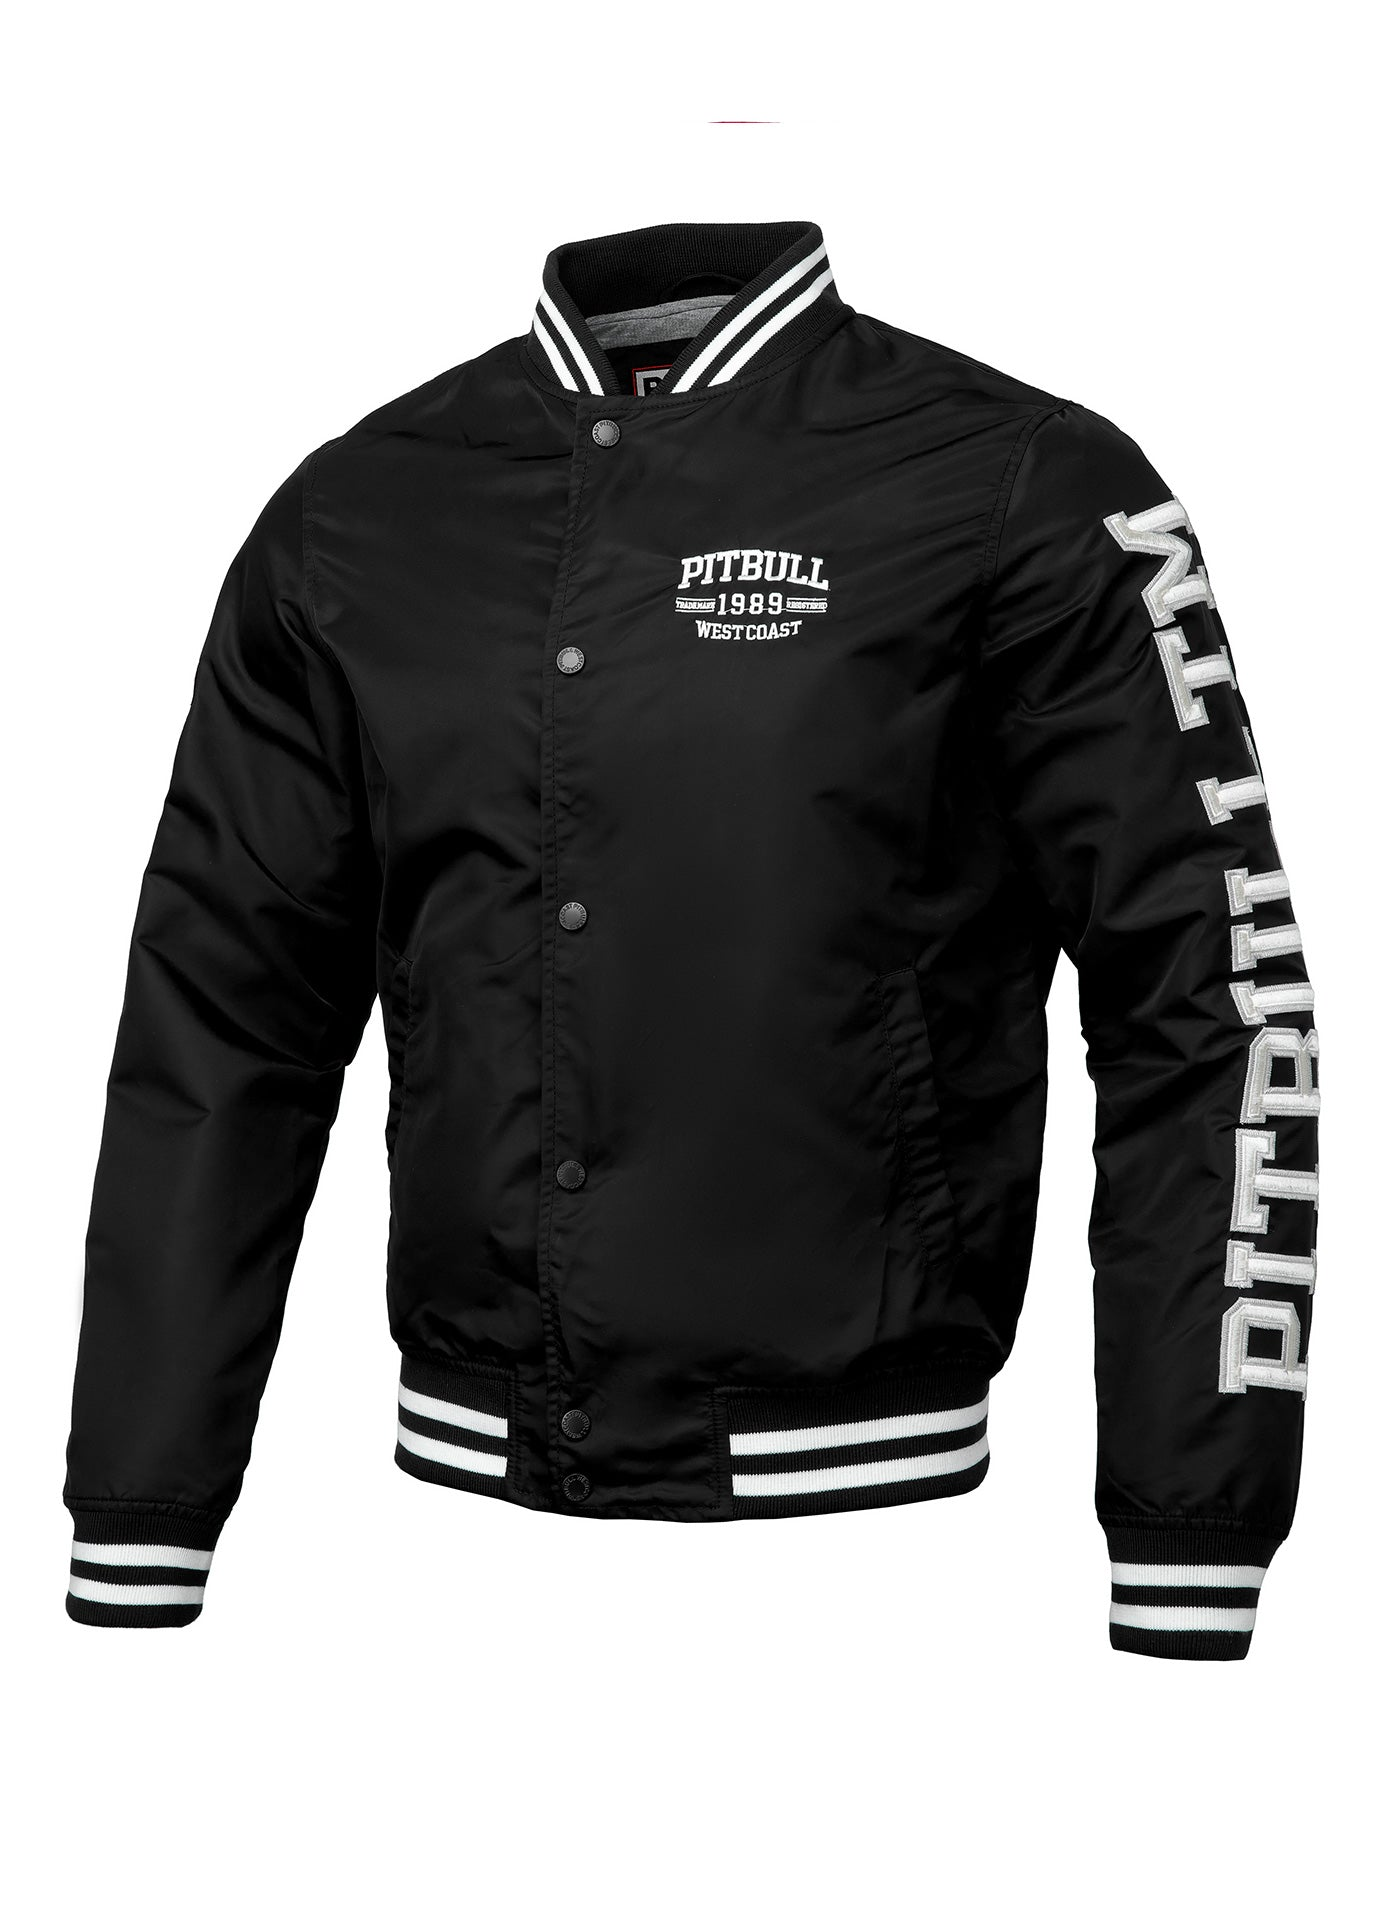 Varsity Jacket HERMANN Black - Pitbull West Coast U.S.A.